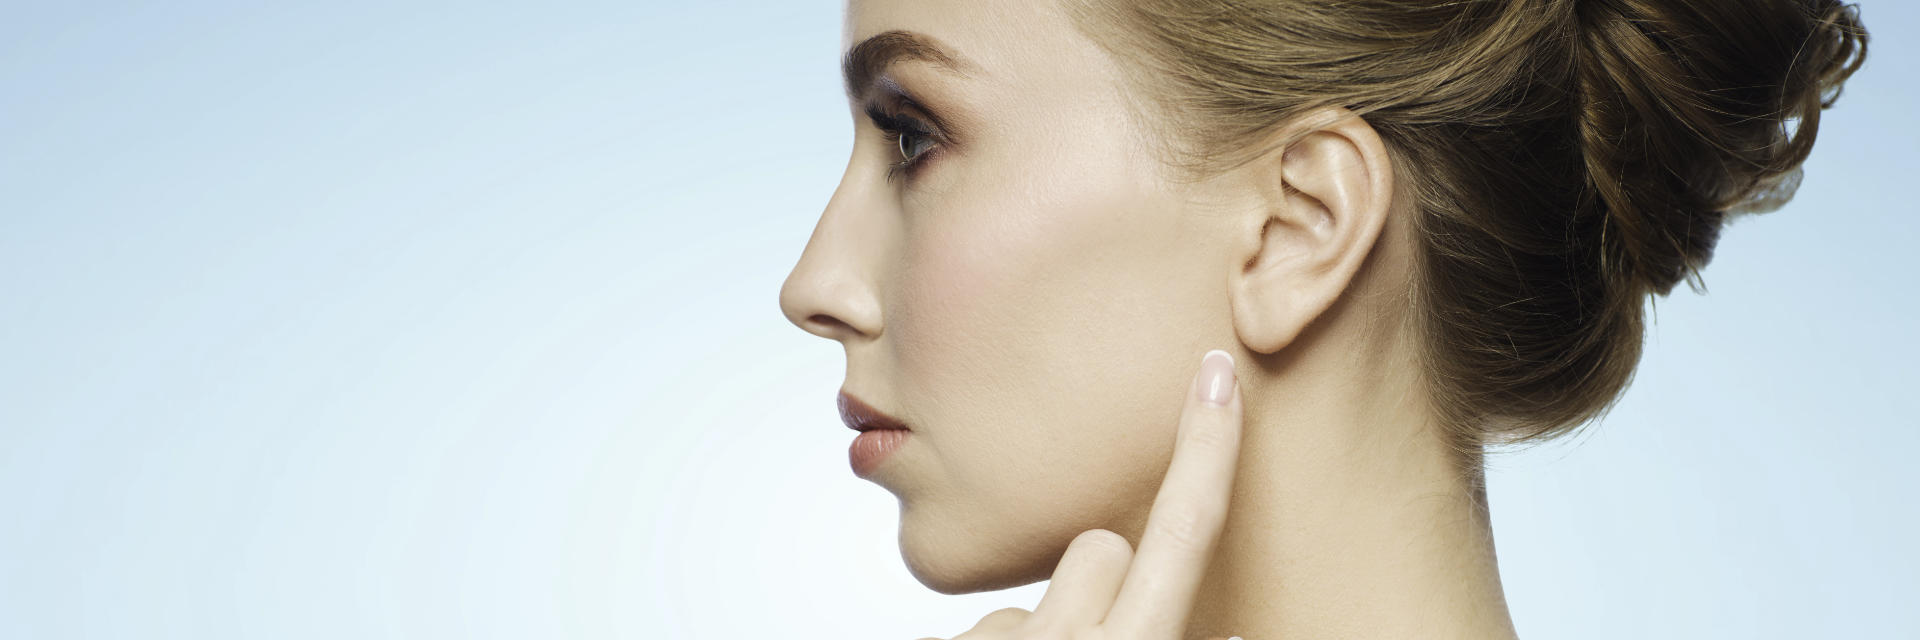 Profile of a young beautiful woman after ear surgery pointing at her left ear.